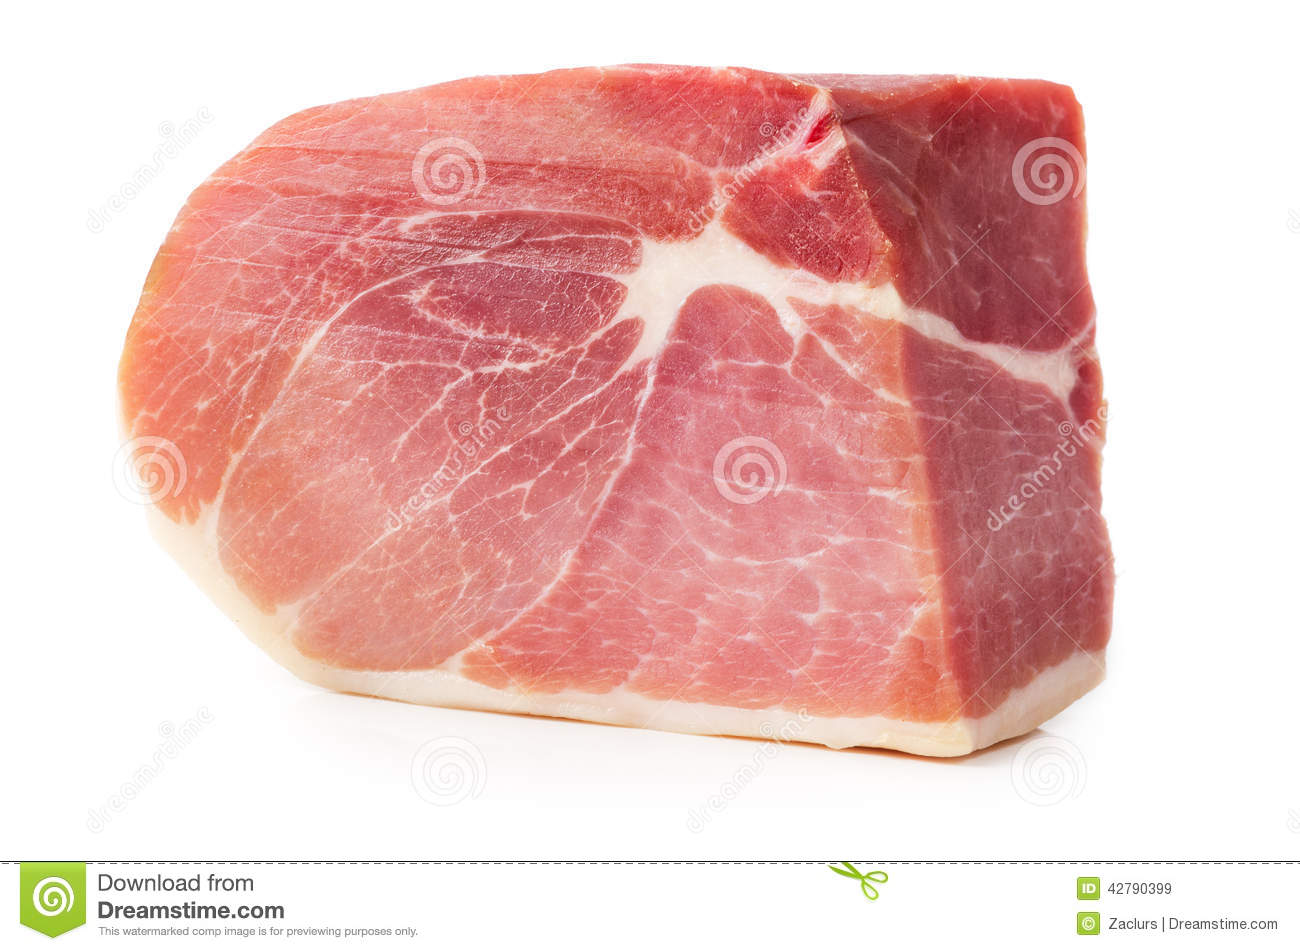 how to cook a piece of ham